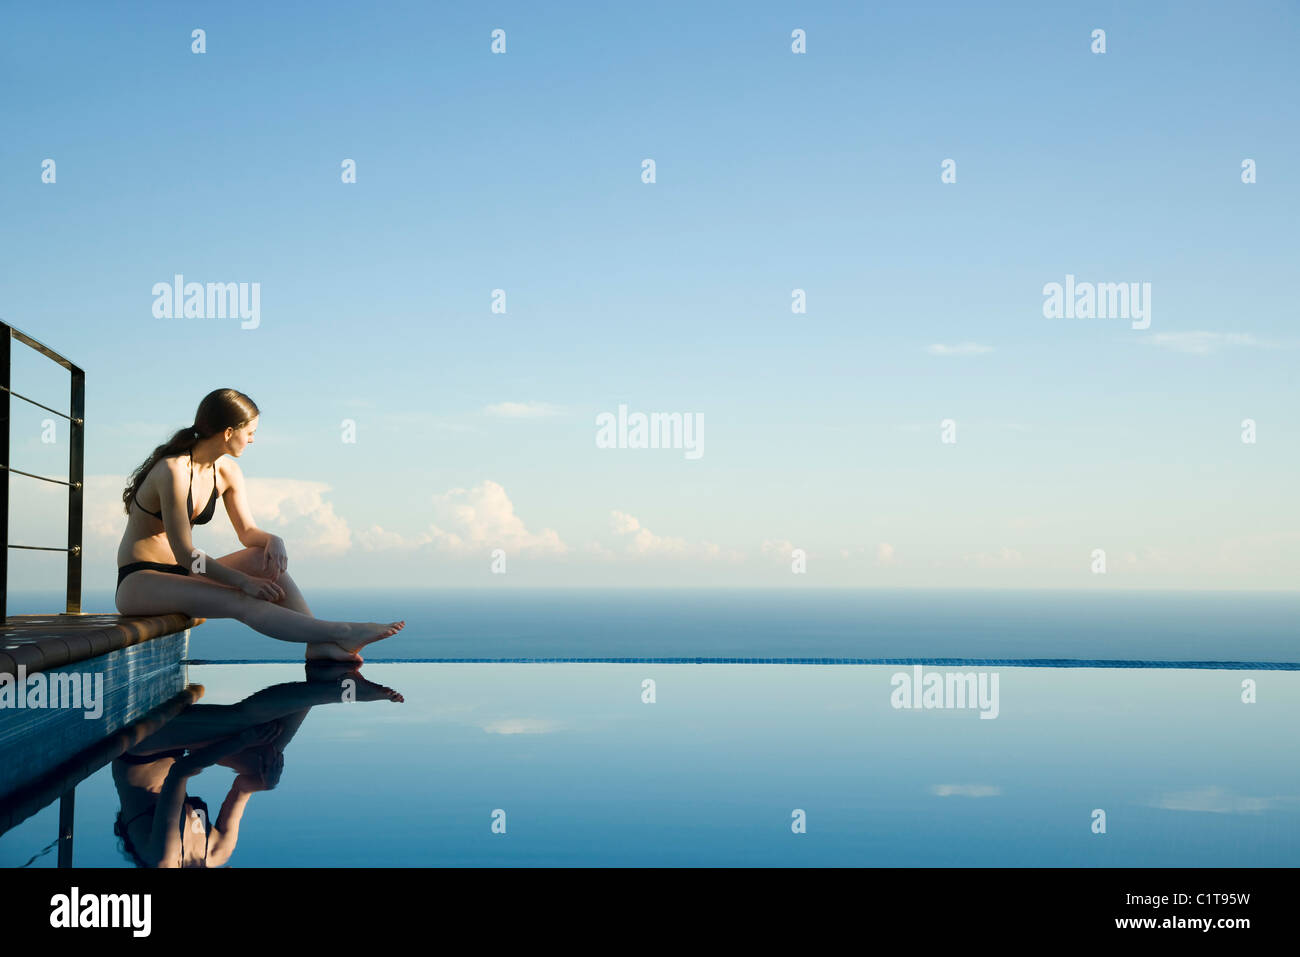 Woman sitting at edge of infinity pool, looking at view - Stock Image